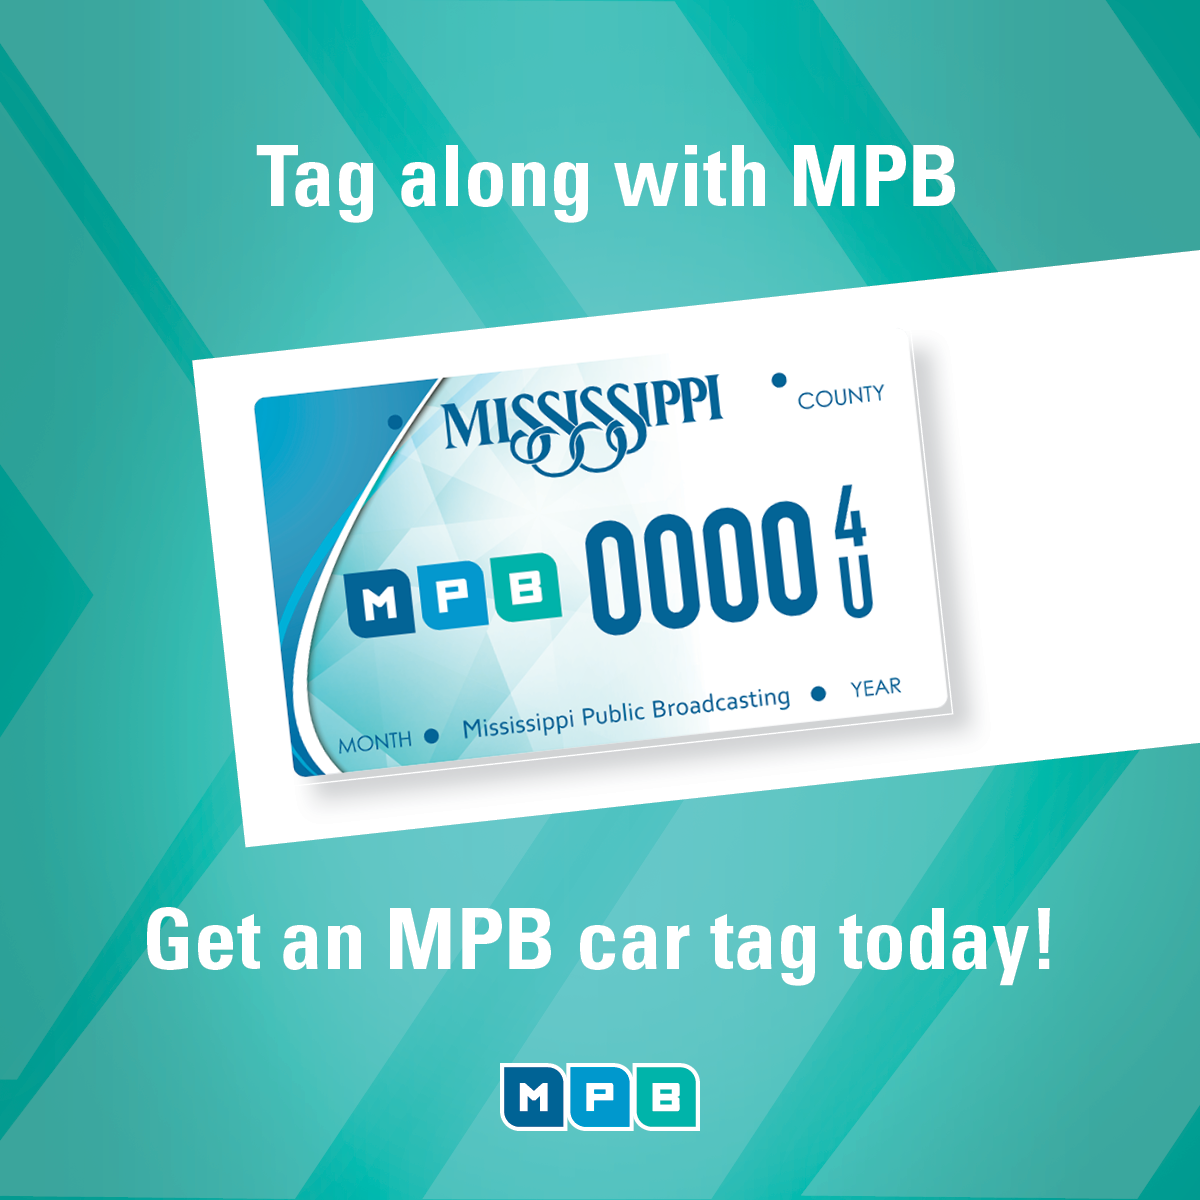 Get the MPB Car Tag